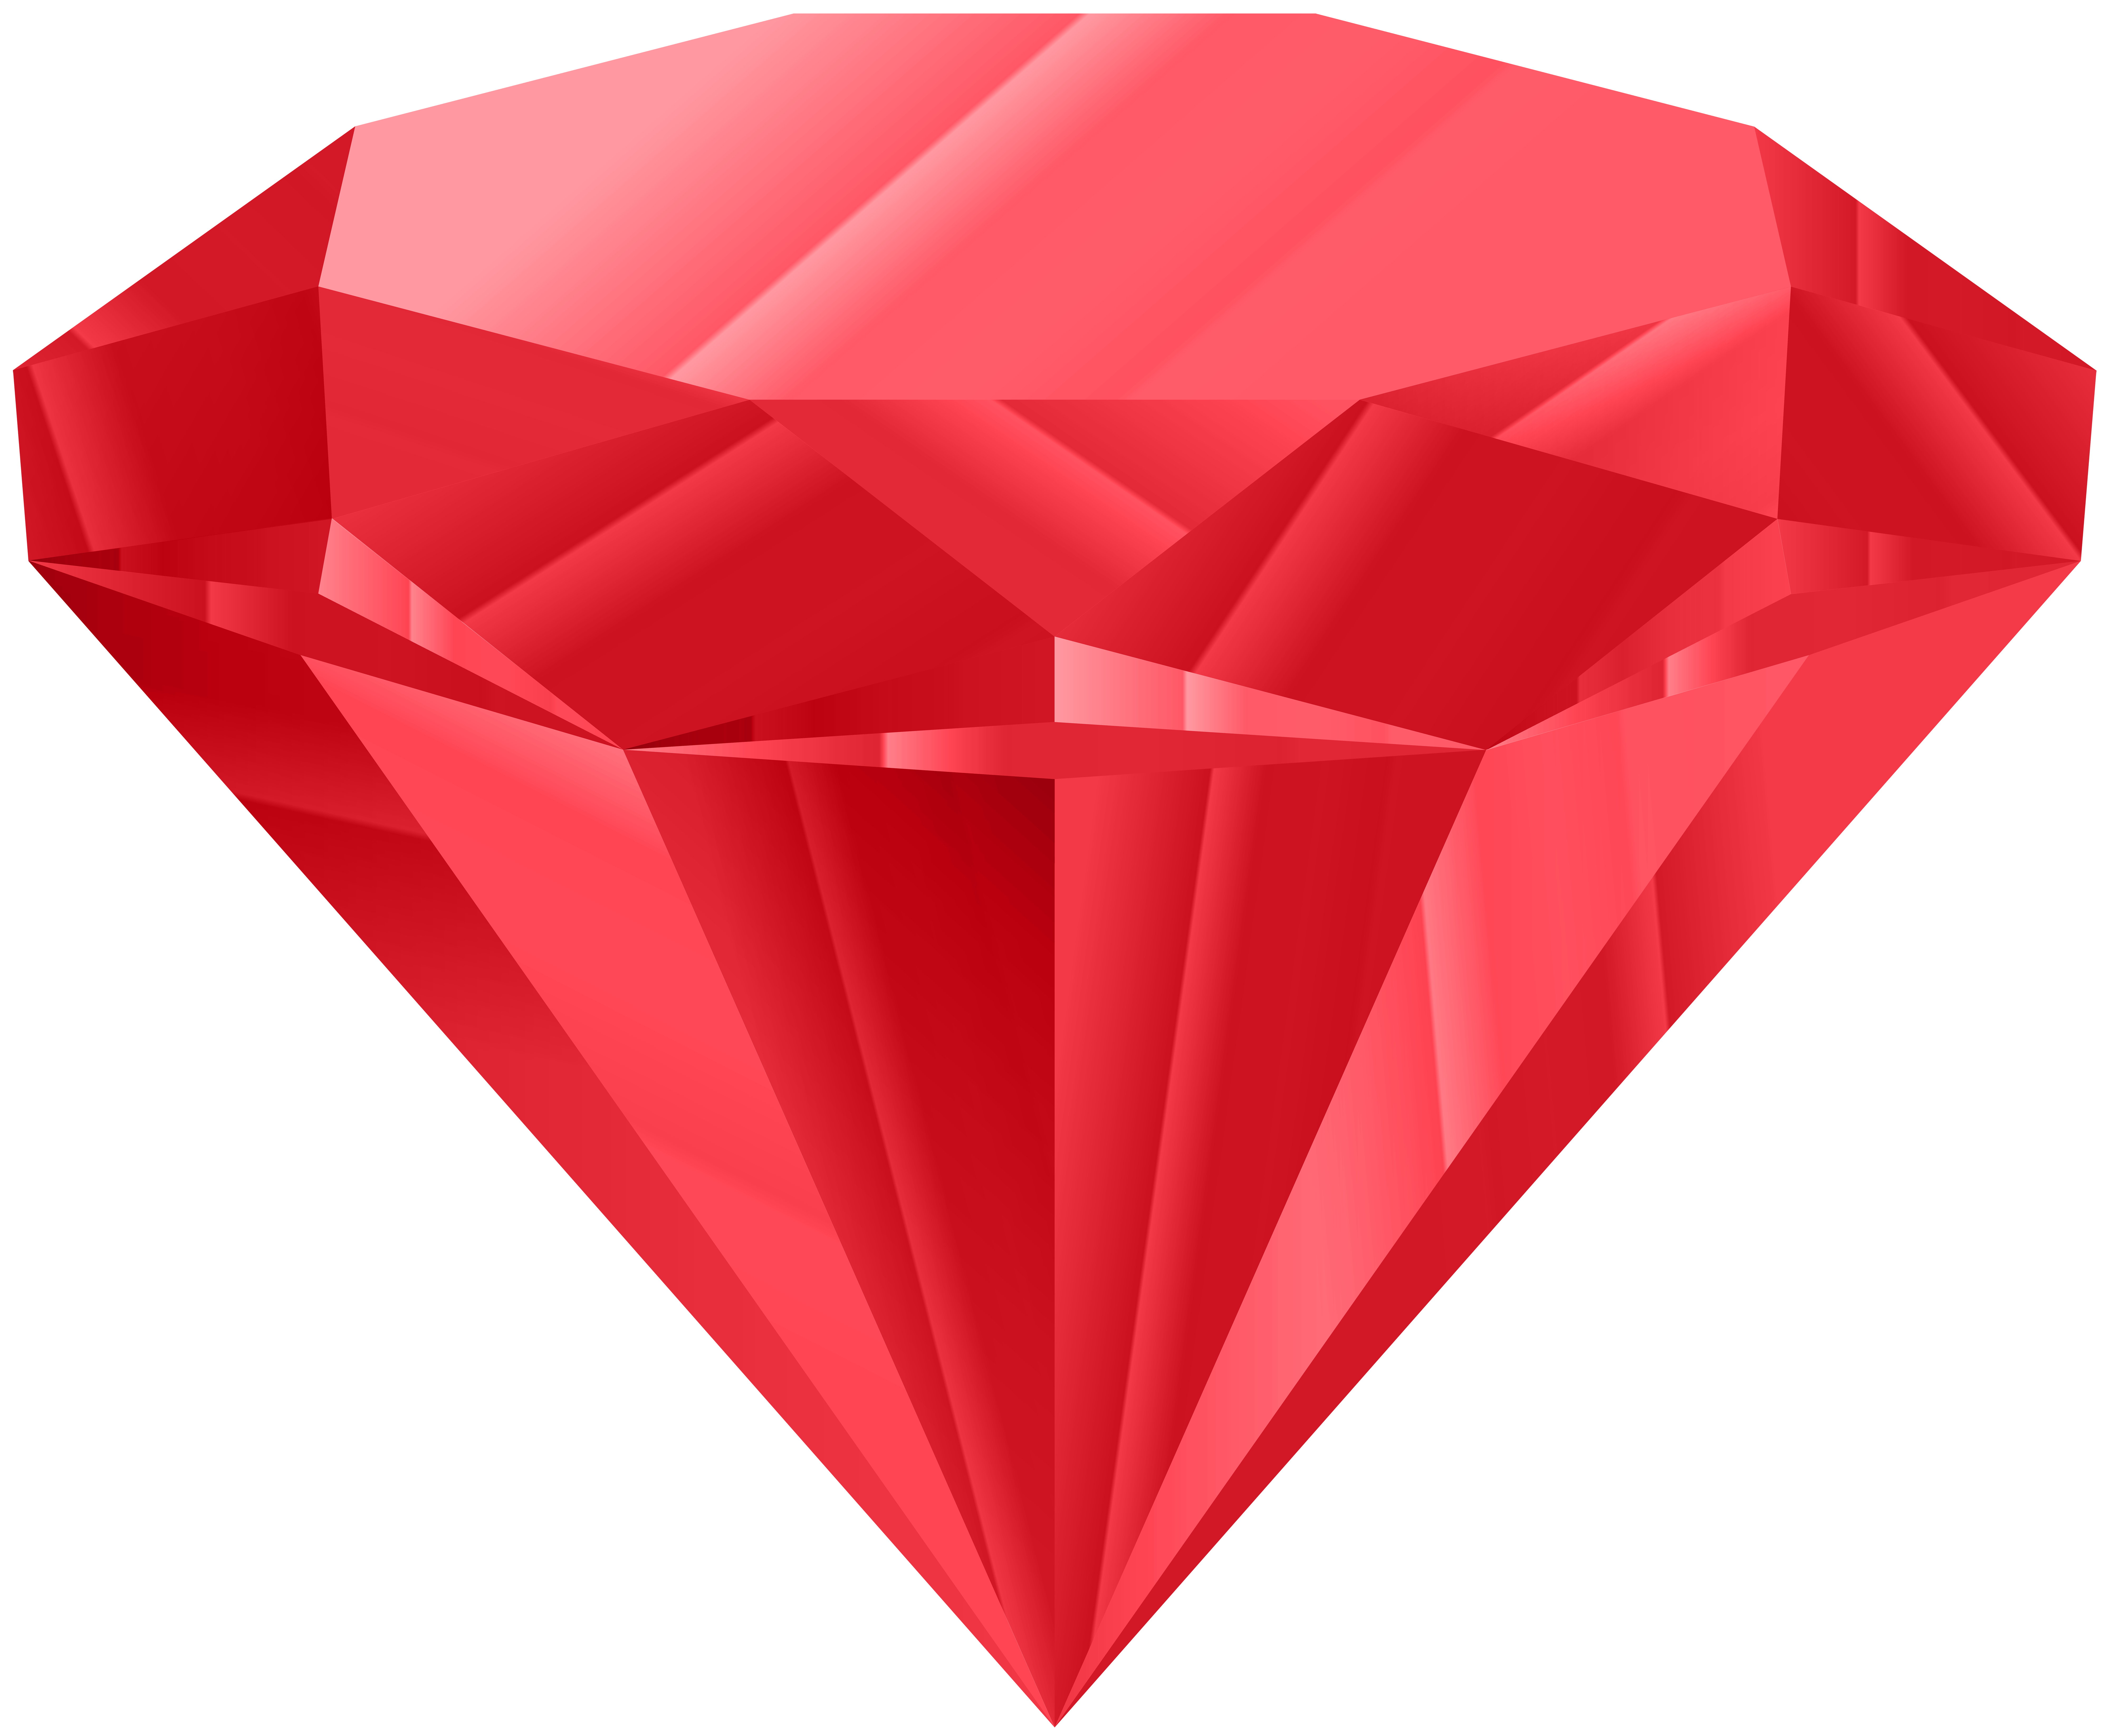 Red diamond png. Clip art image gallery